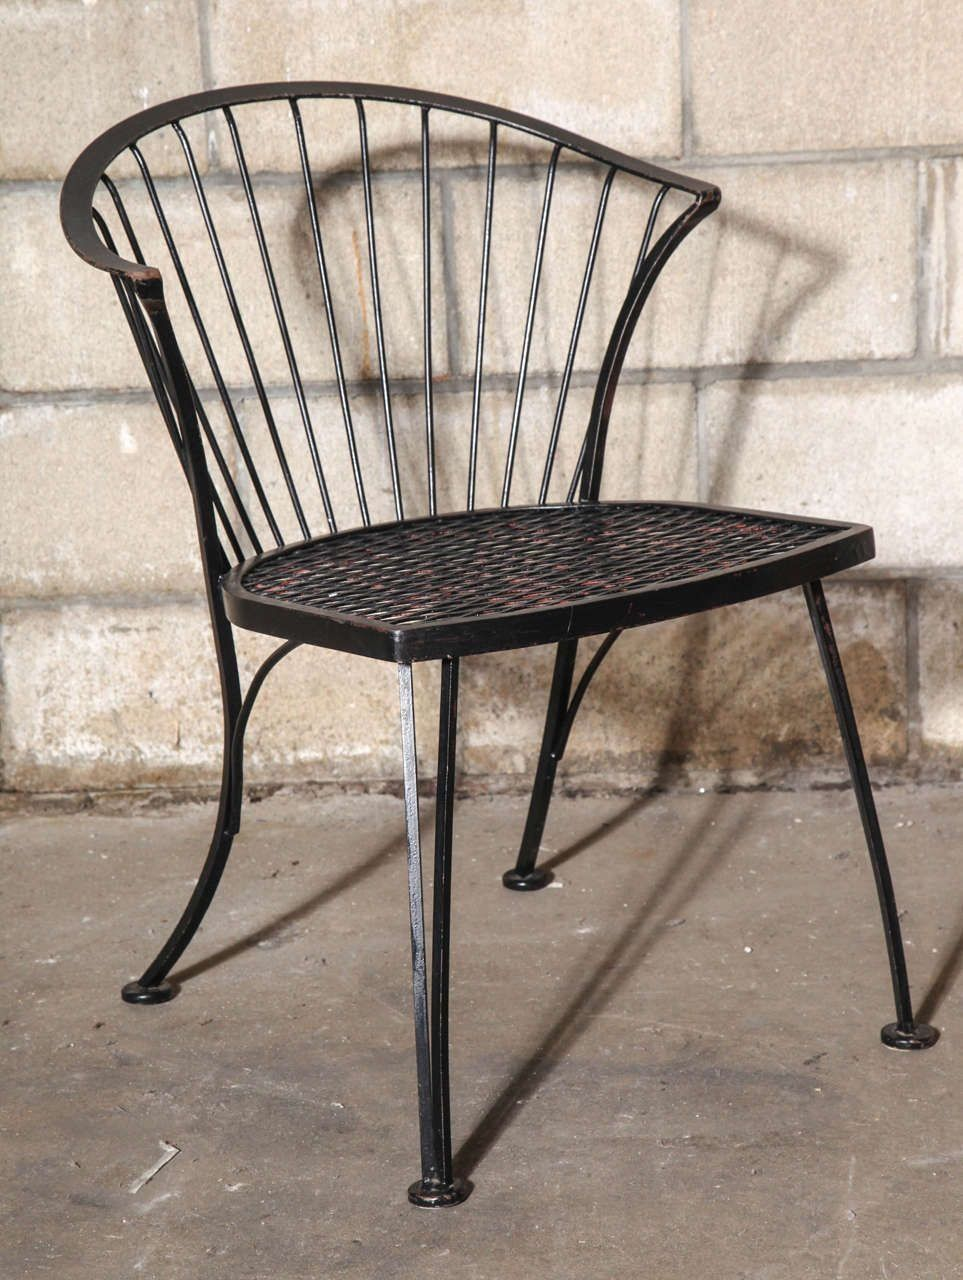 Antique And Vintage Patio And Garden Furniture 3 460 For Sale At 1stdibs 1002 In 2020 Vintage Patio Garden Furniture Uk Modern Garden Furniture